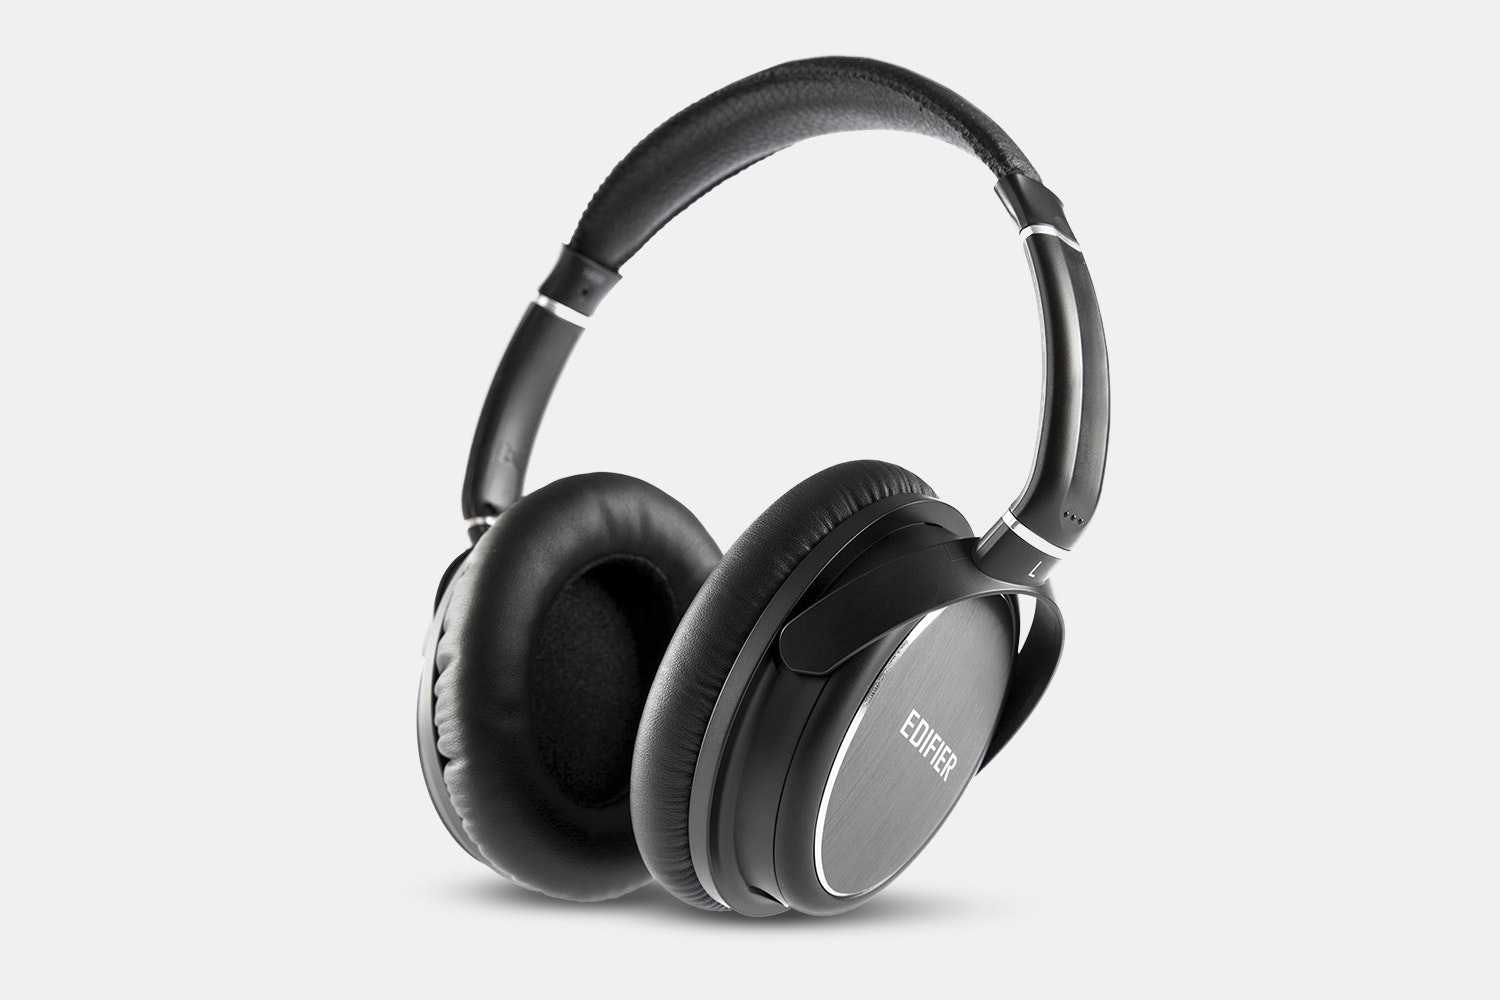 Edifier H850 Over-The-Ear Lightweight Headphones